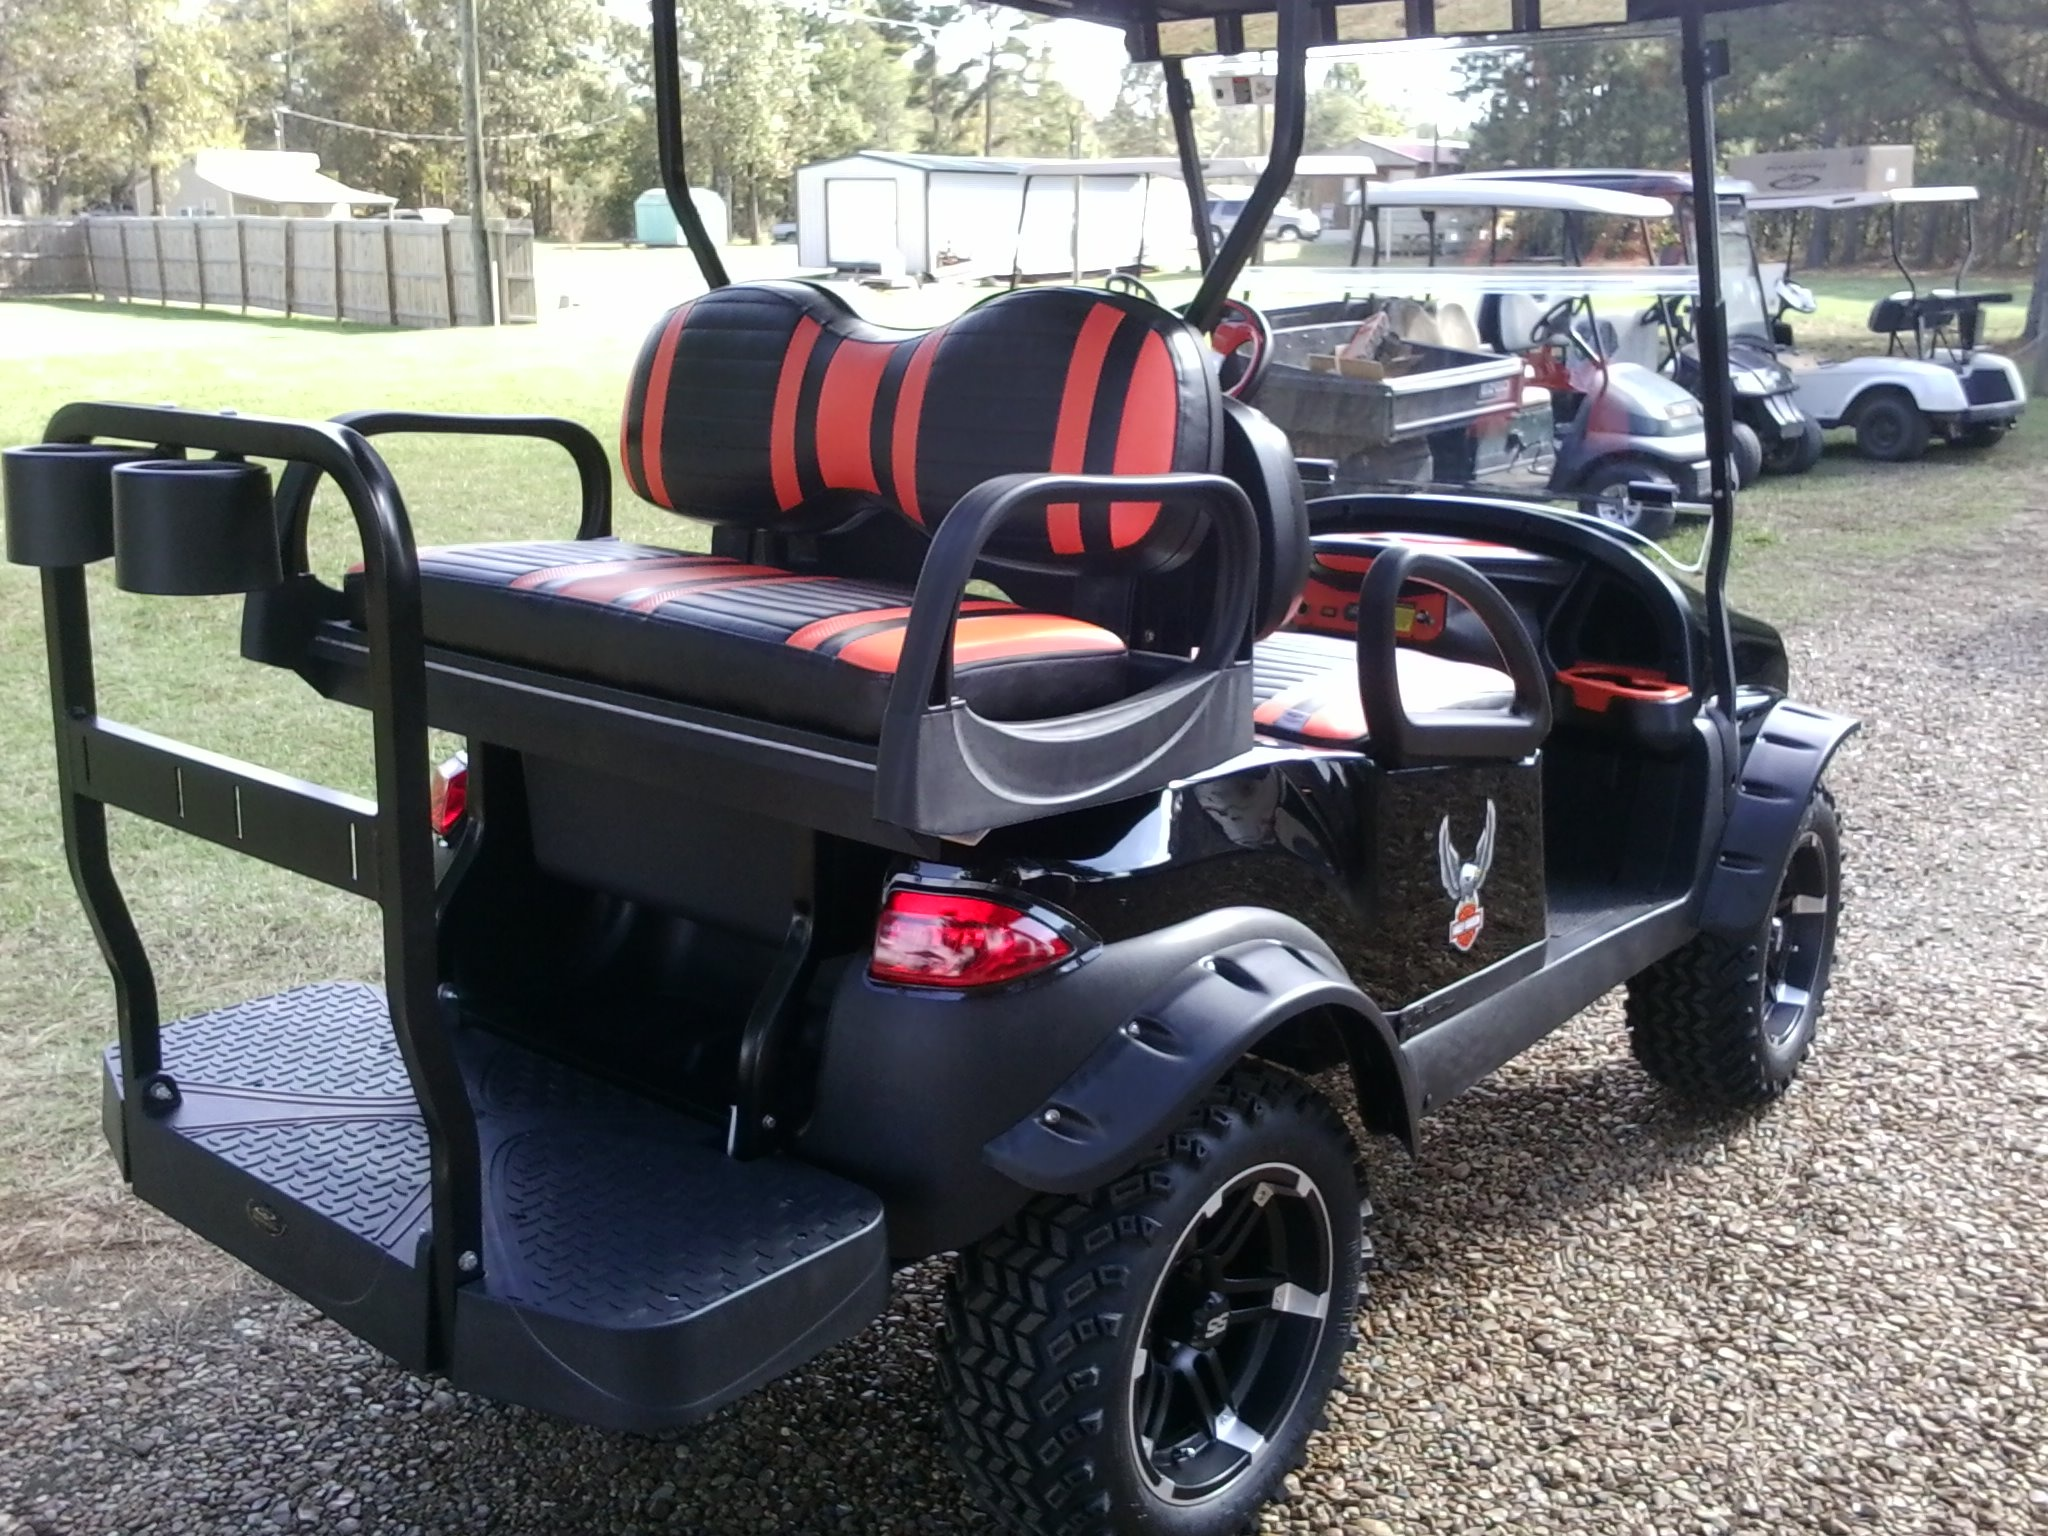 Caney Ridge Golf Carts - Electric Carts on custom yamaha drive golf cart, custom golf cart paint colors, custom golf cart seats wholesale, custom golf cart utility, custom golf cart trailers, custom golf cart bodies, custom golf cart paint designs, custom audio golf cart, custom golf cart graphics, custom purdue golf cart, custom golf cart new orleans, custom columbia golf cart, custom golf cart speakers,